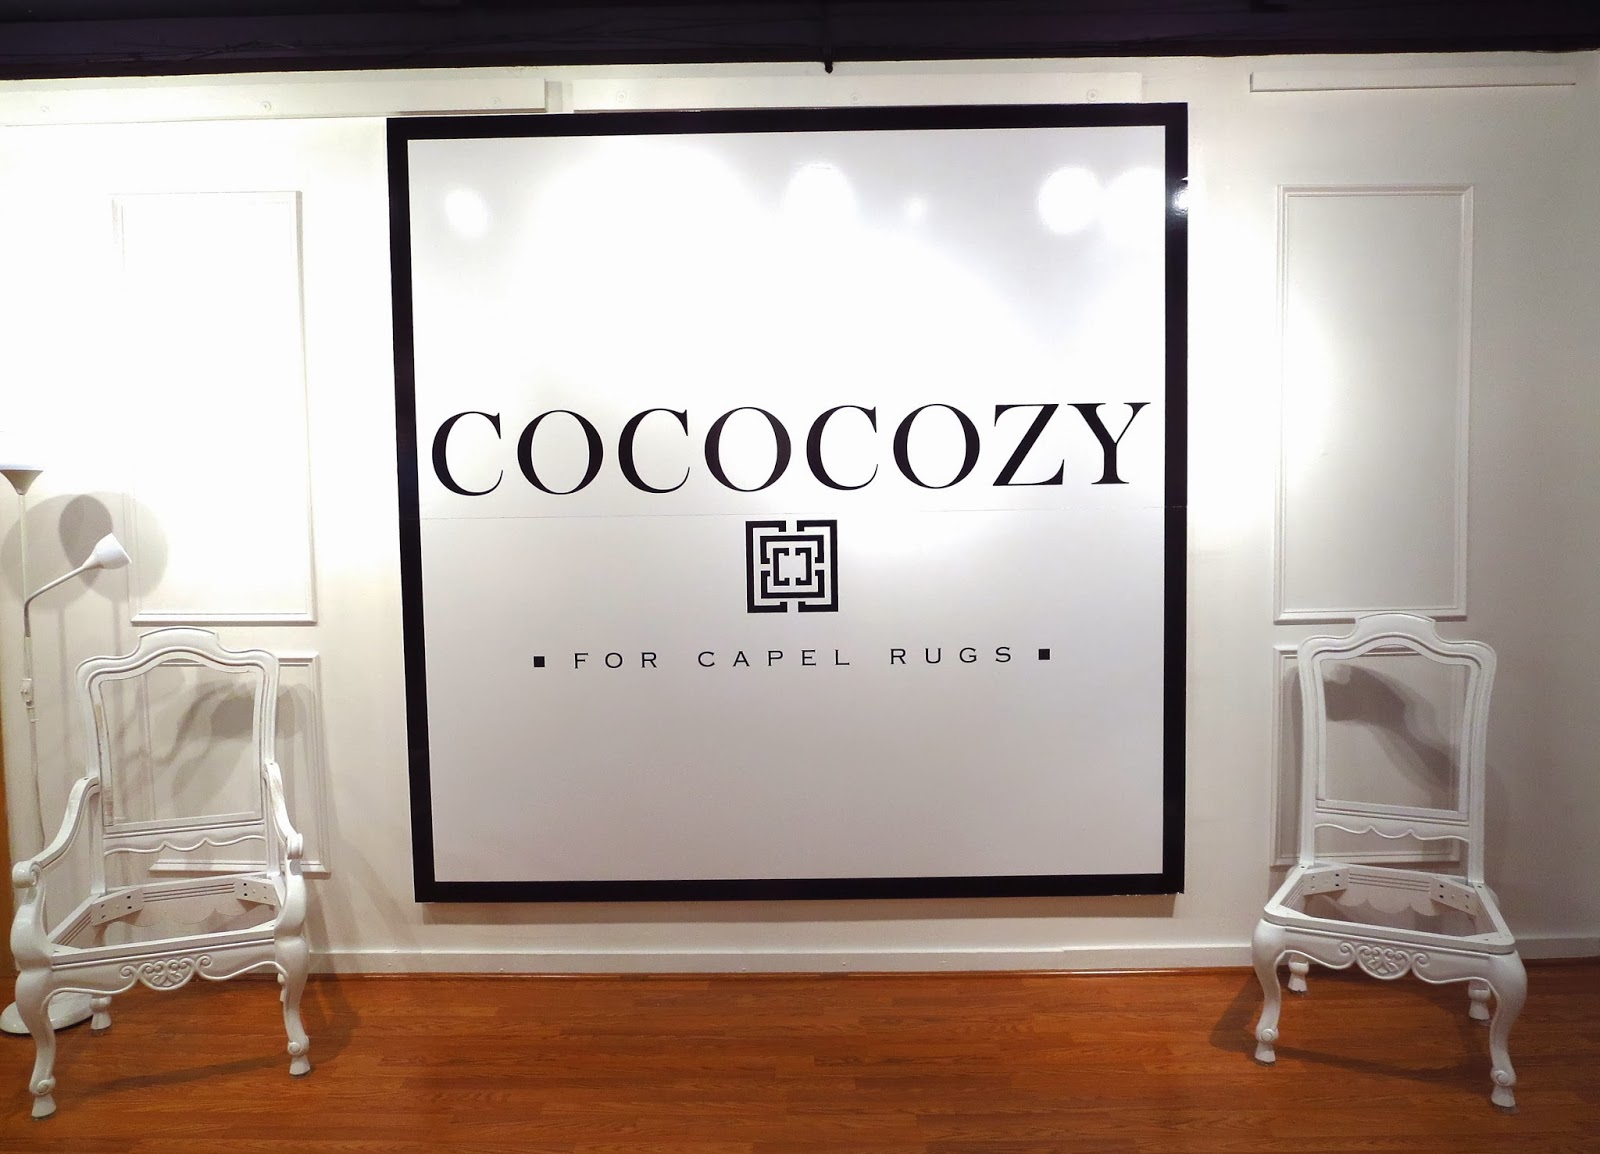 Cococozy Signage In The Capel Rugs Showroom   Capel Rugs